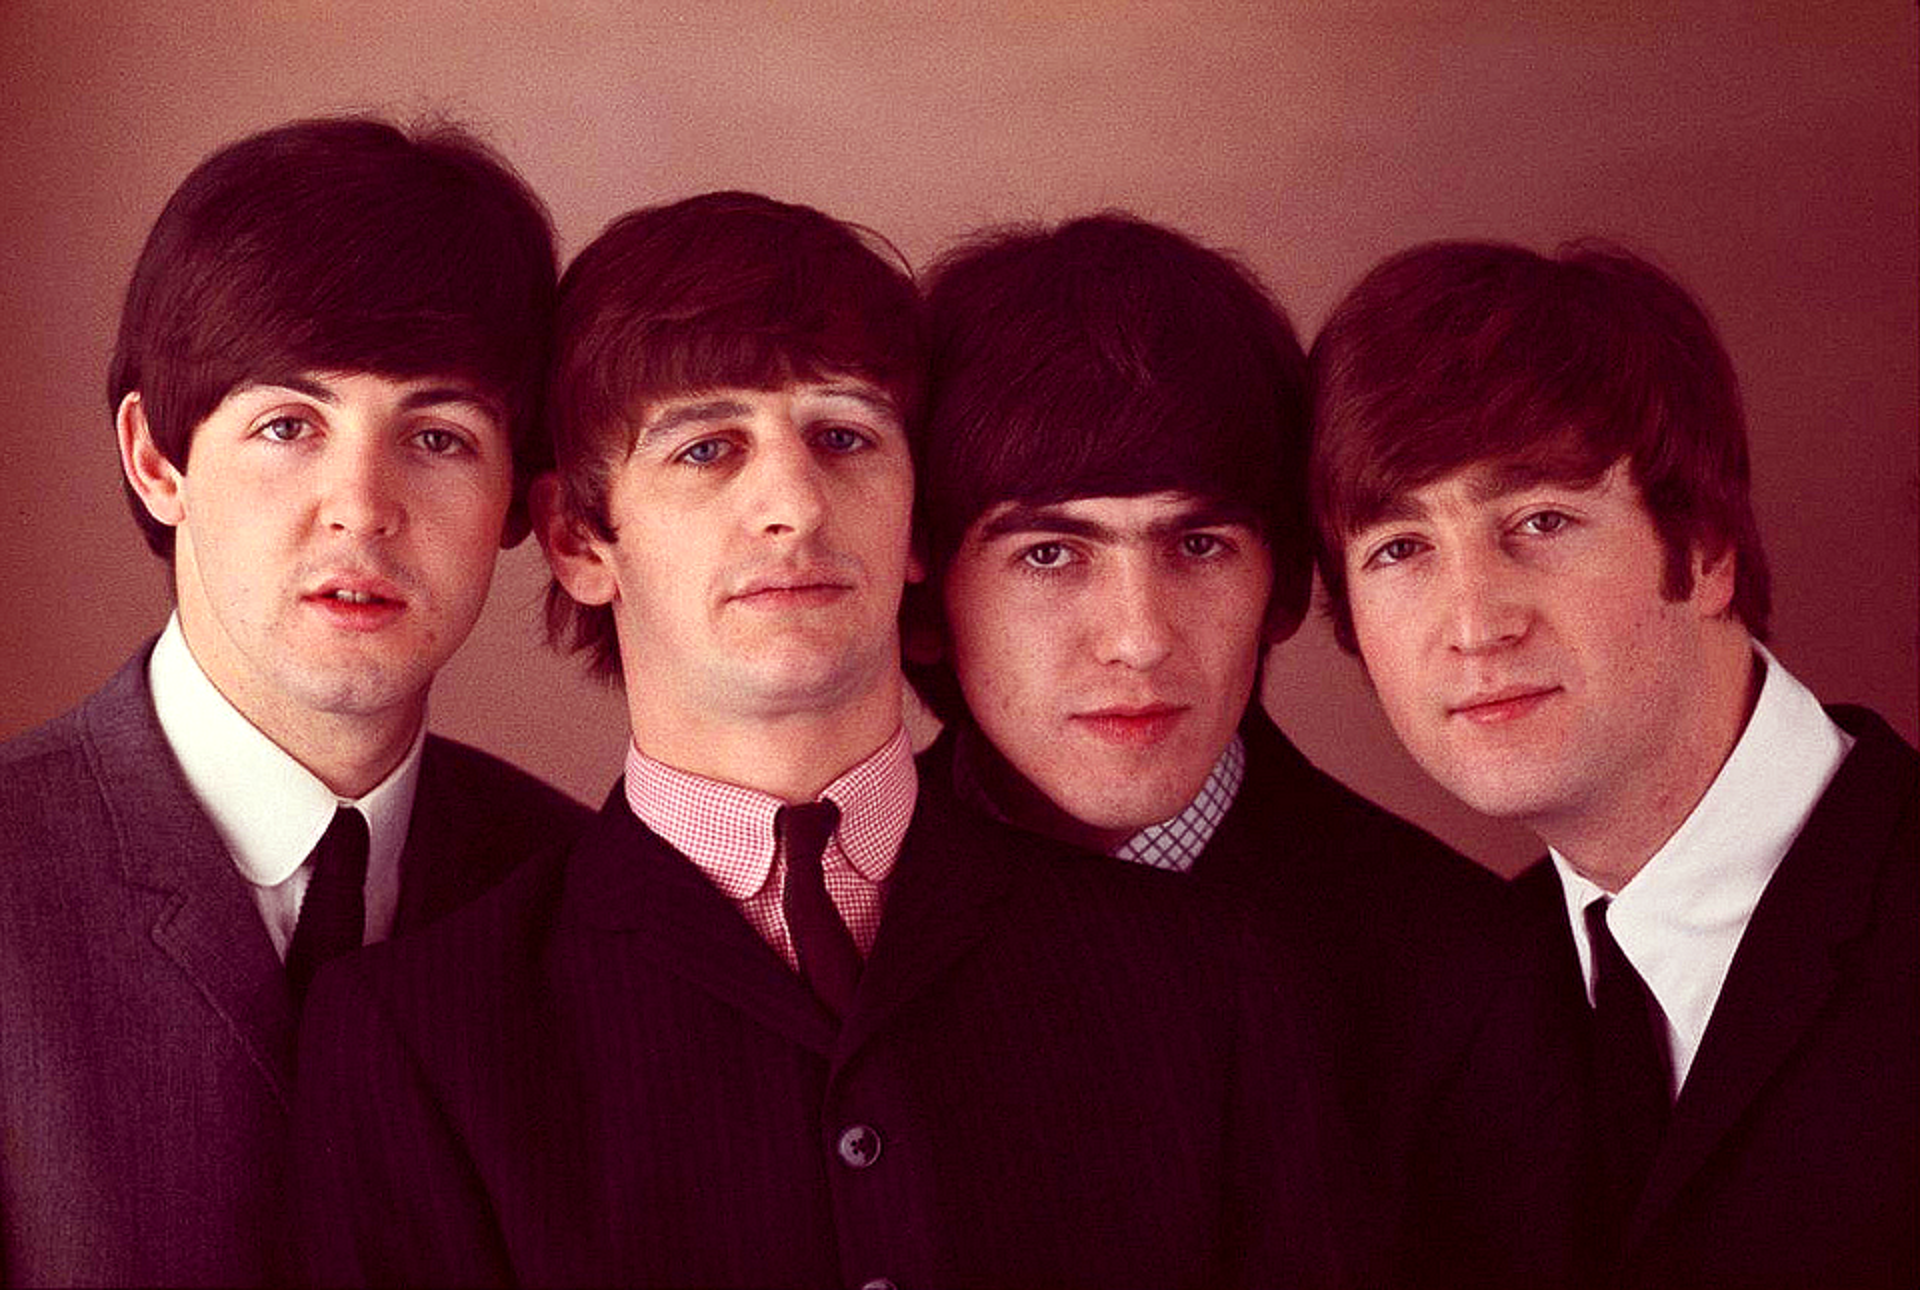 The Beatles HD Wallpaper   Background Image   1920x1290 ...